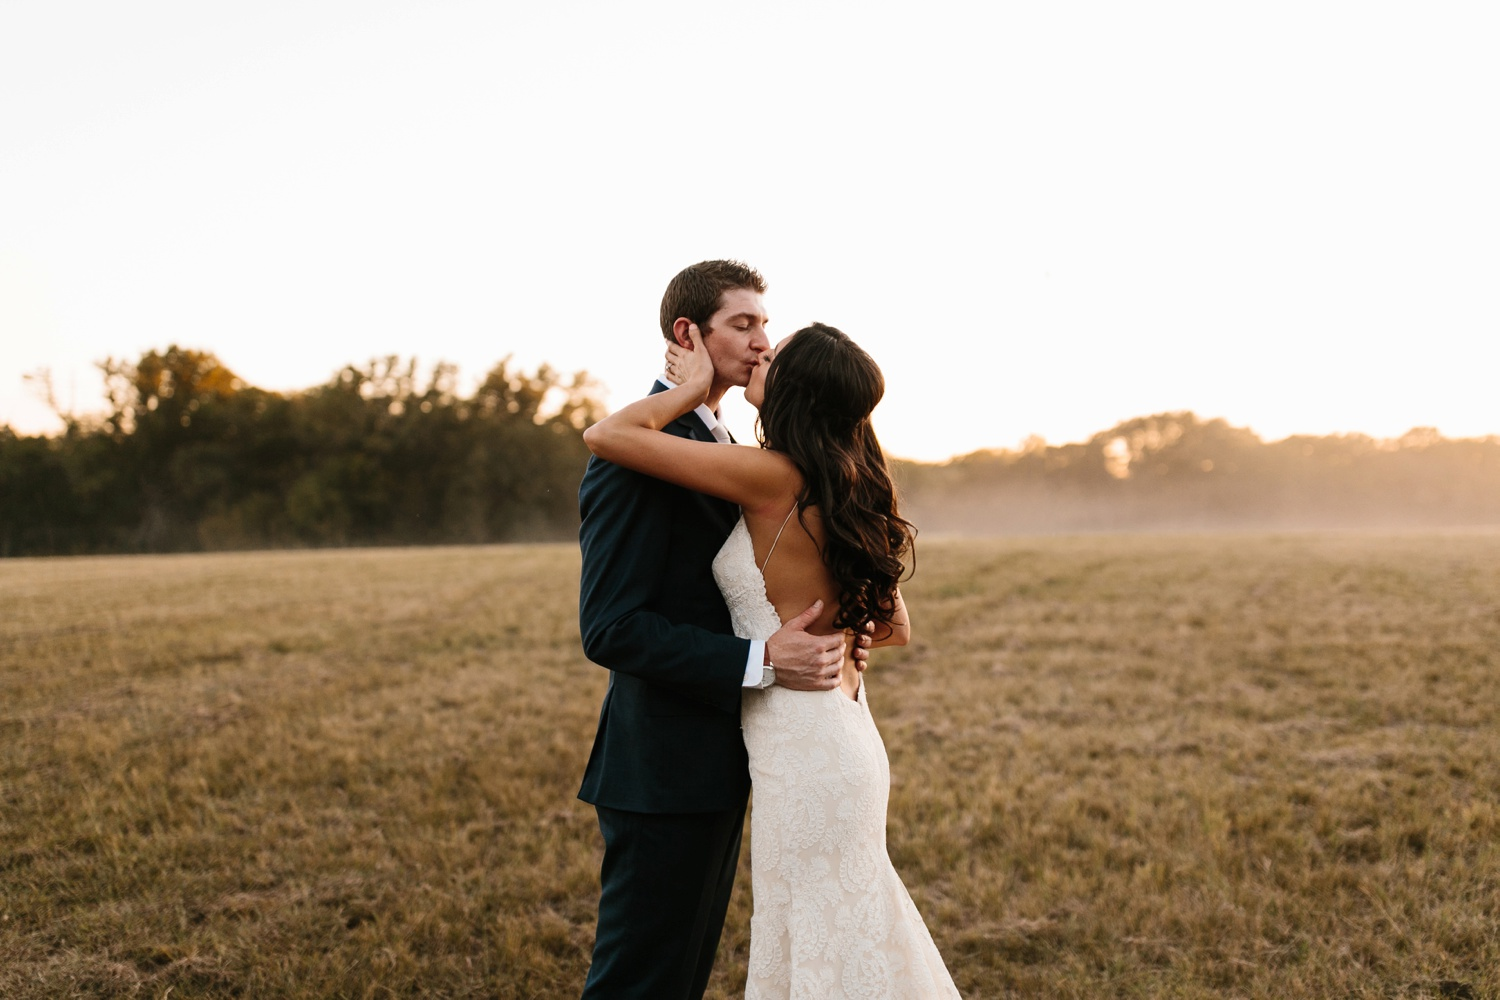 Erica + Henry | a bohemian inspired wedding at Chandlers Gardens in Salina, TX by North Texas Wedding Photographer Rachel Meagan Photography 110